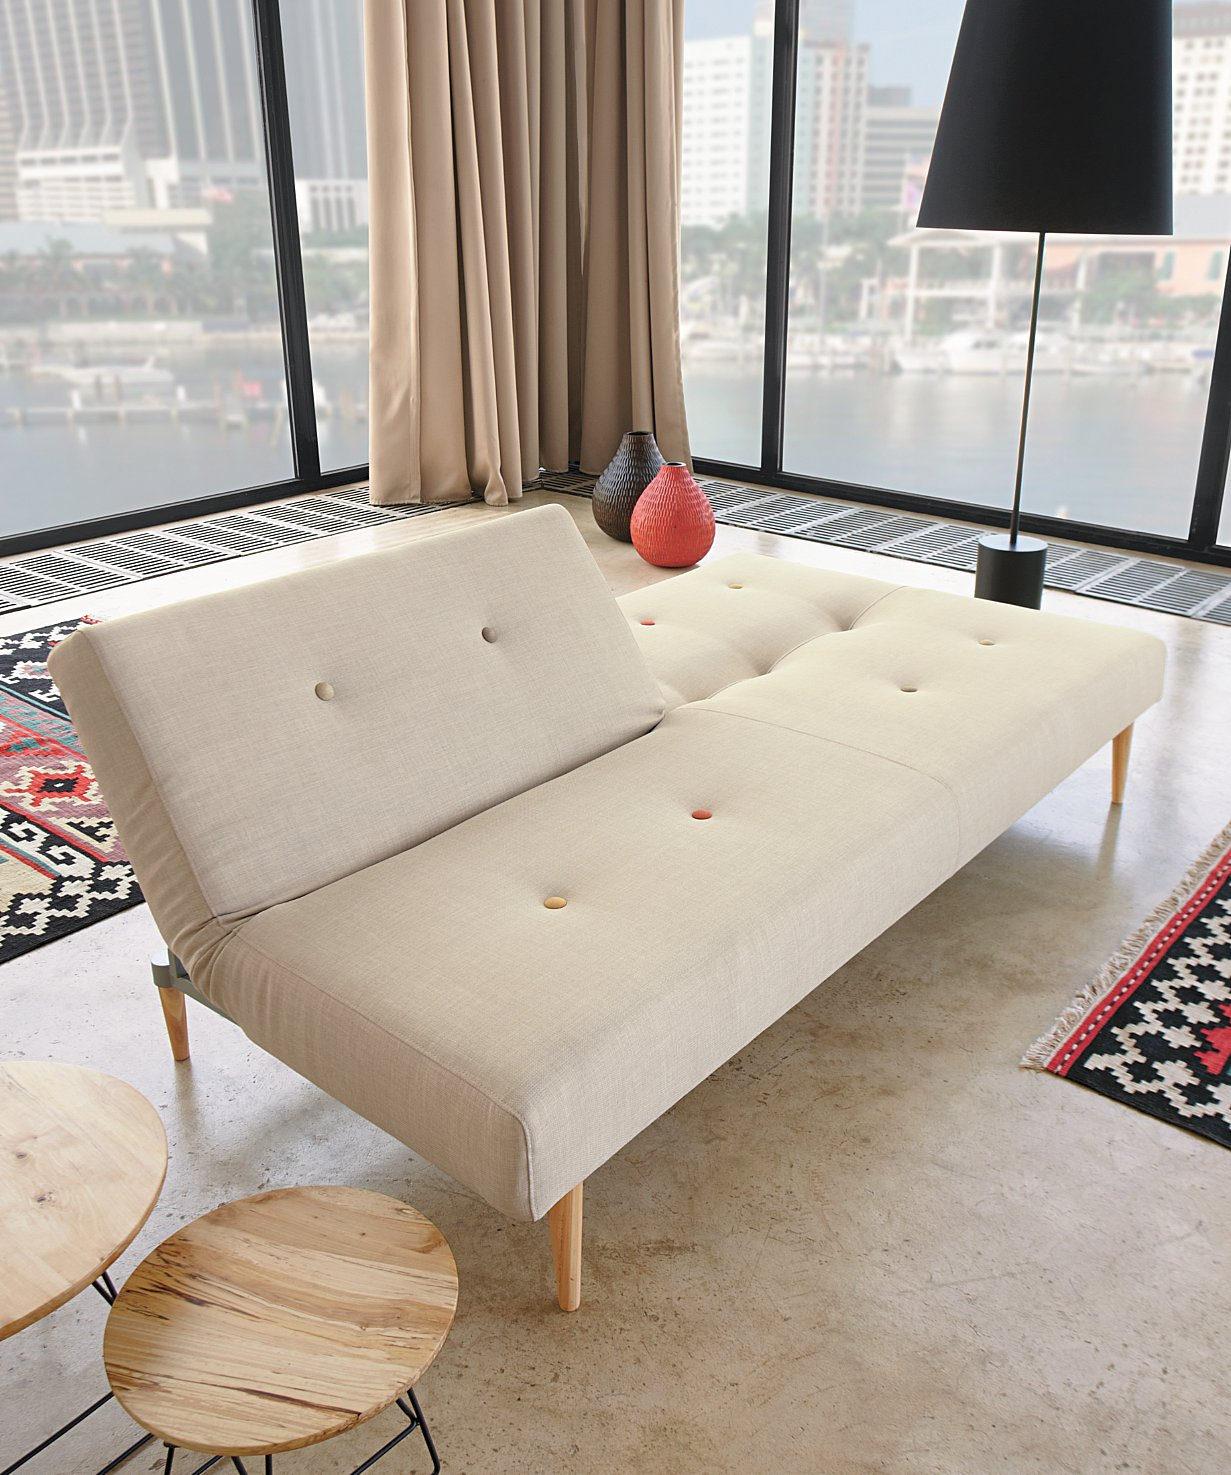 FIFTYNINE_SOFA_BED_01